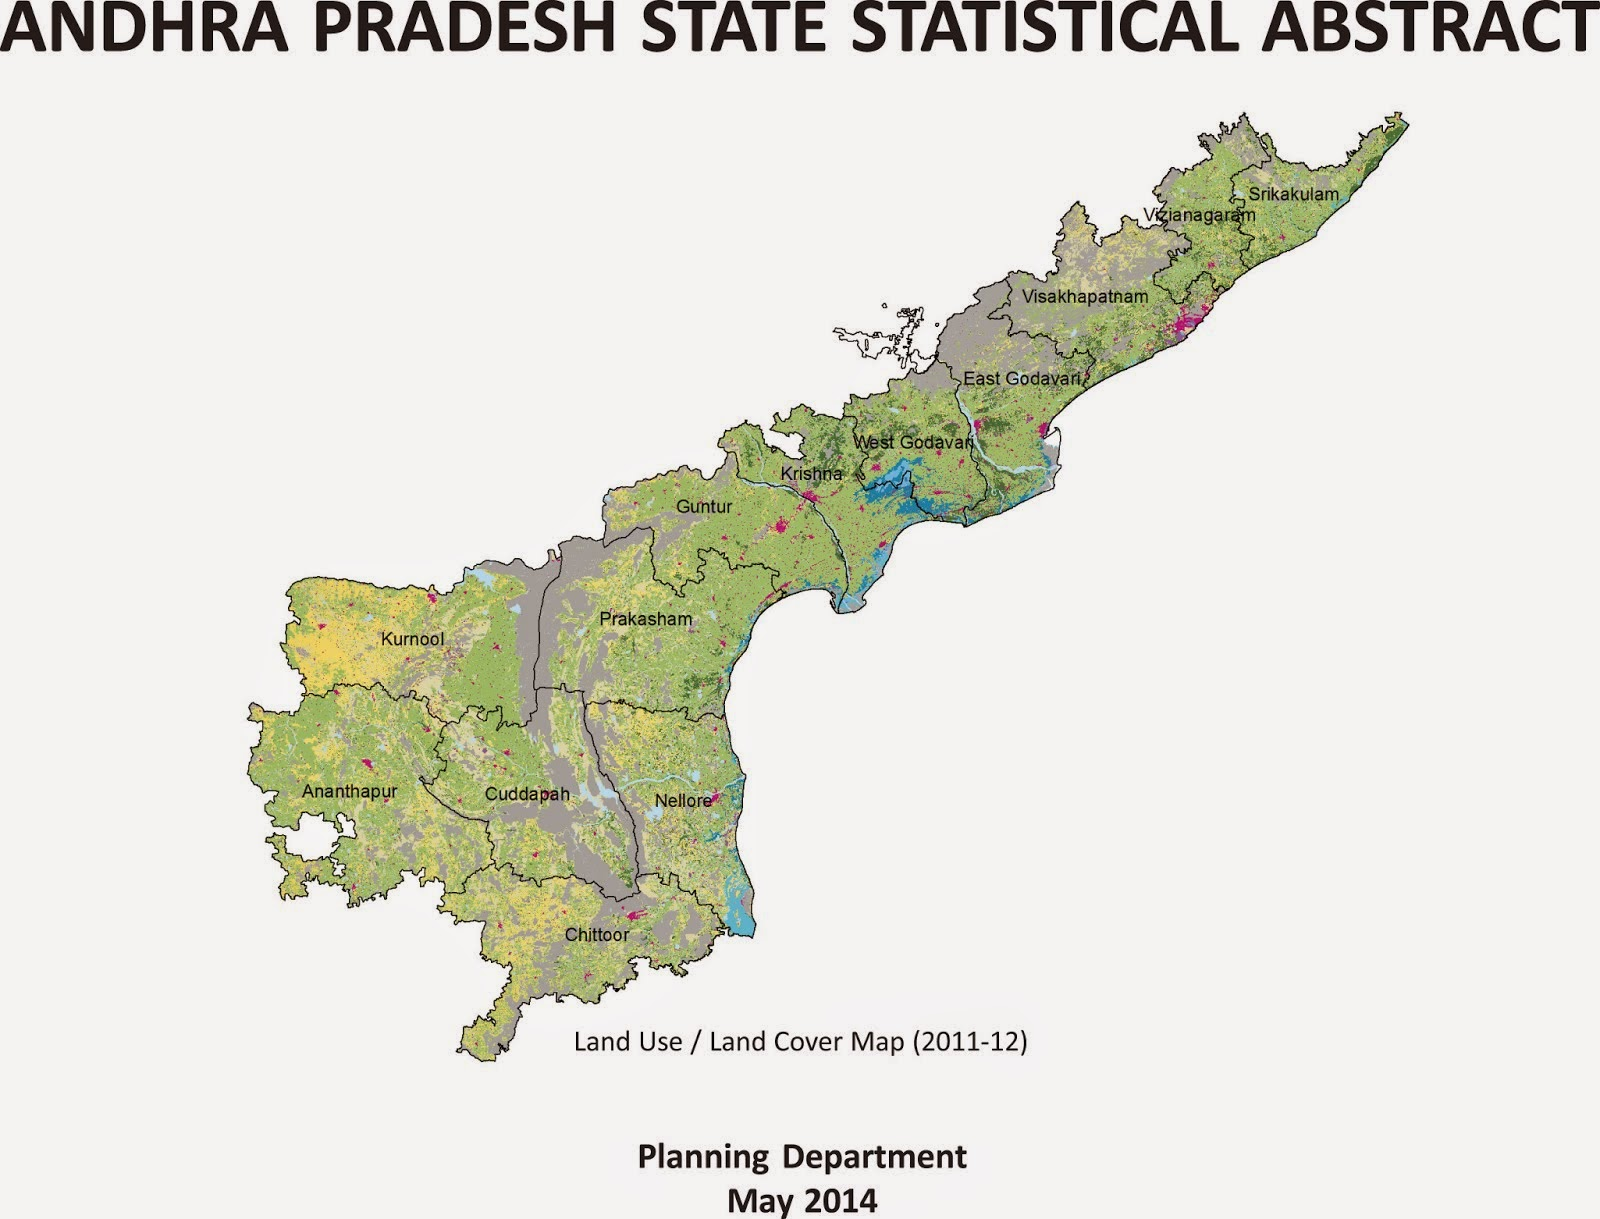 ANDHRA PRADESH STATE STATISTICAL ABSTRACT